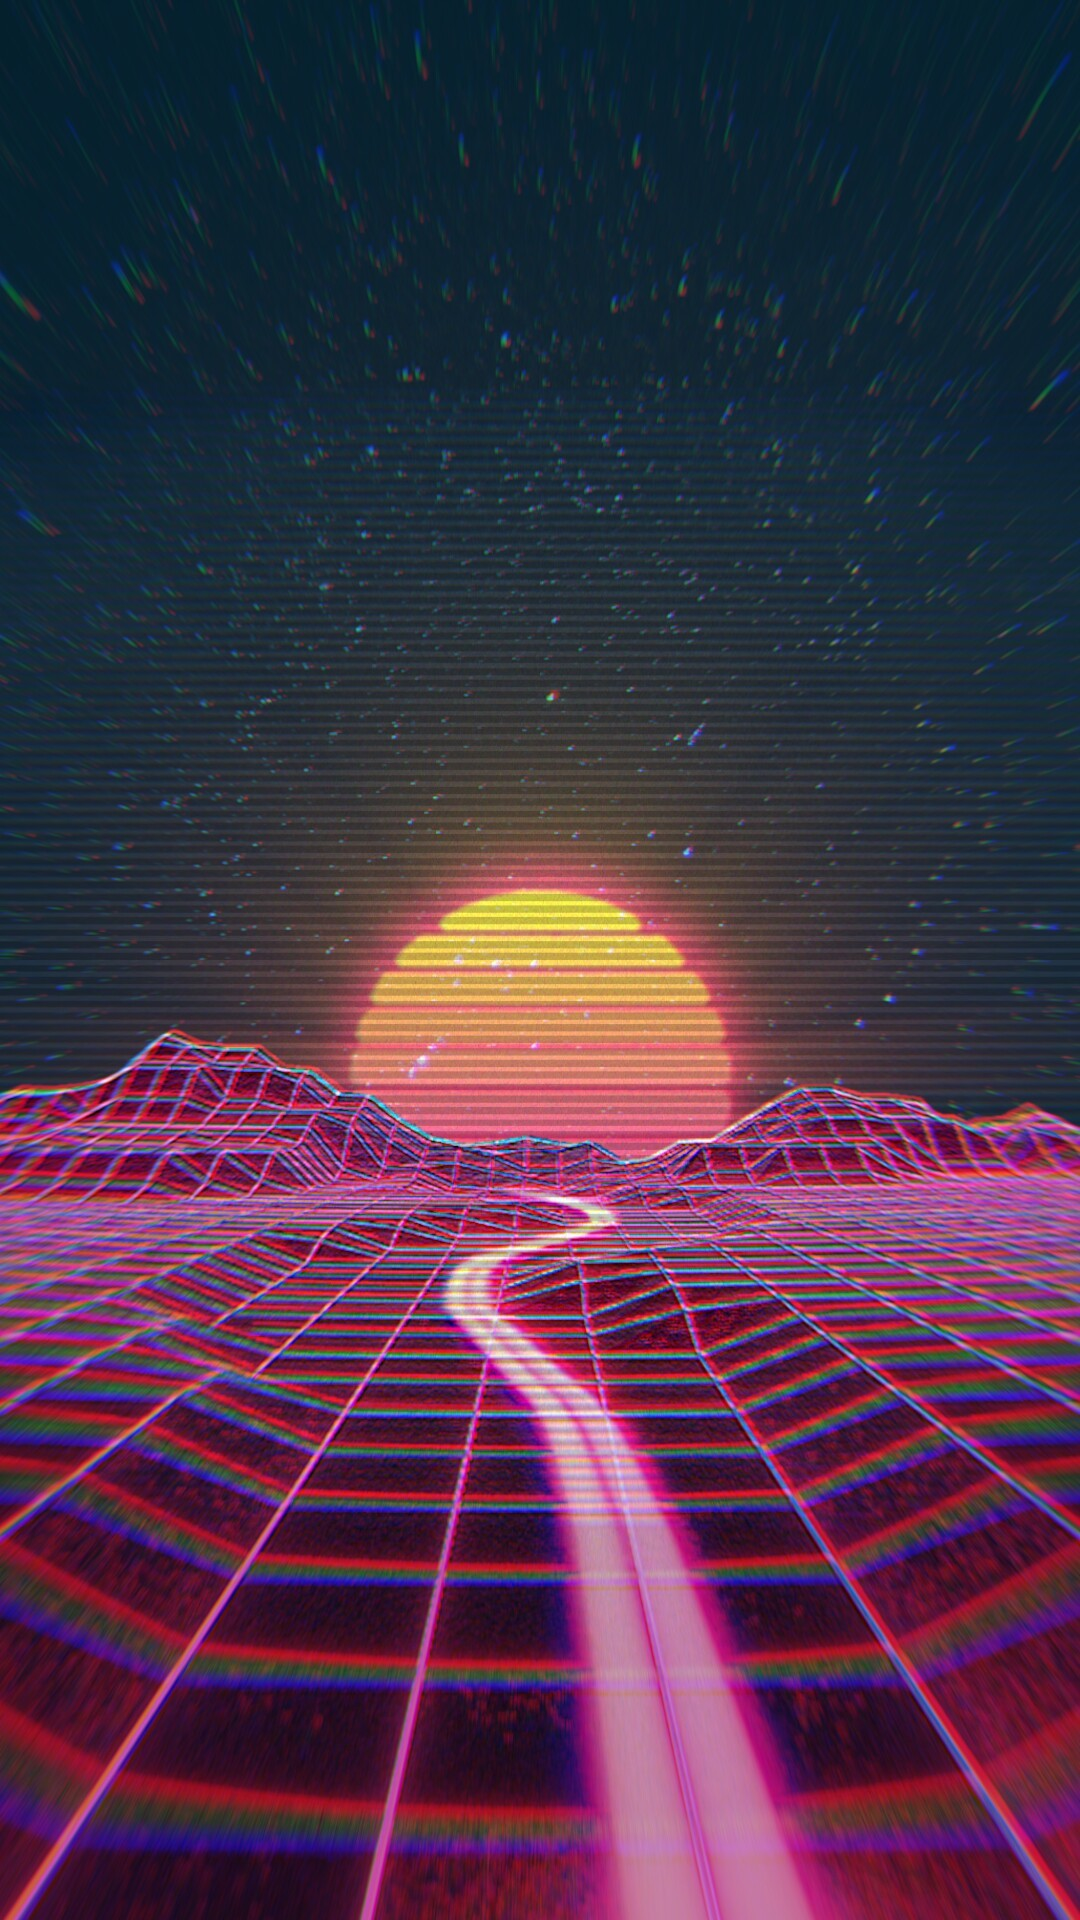 1080x1920 Retro wave synth wave